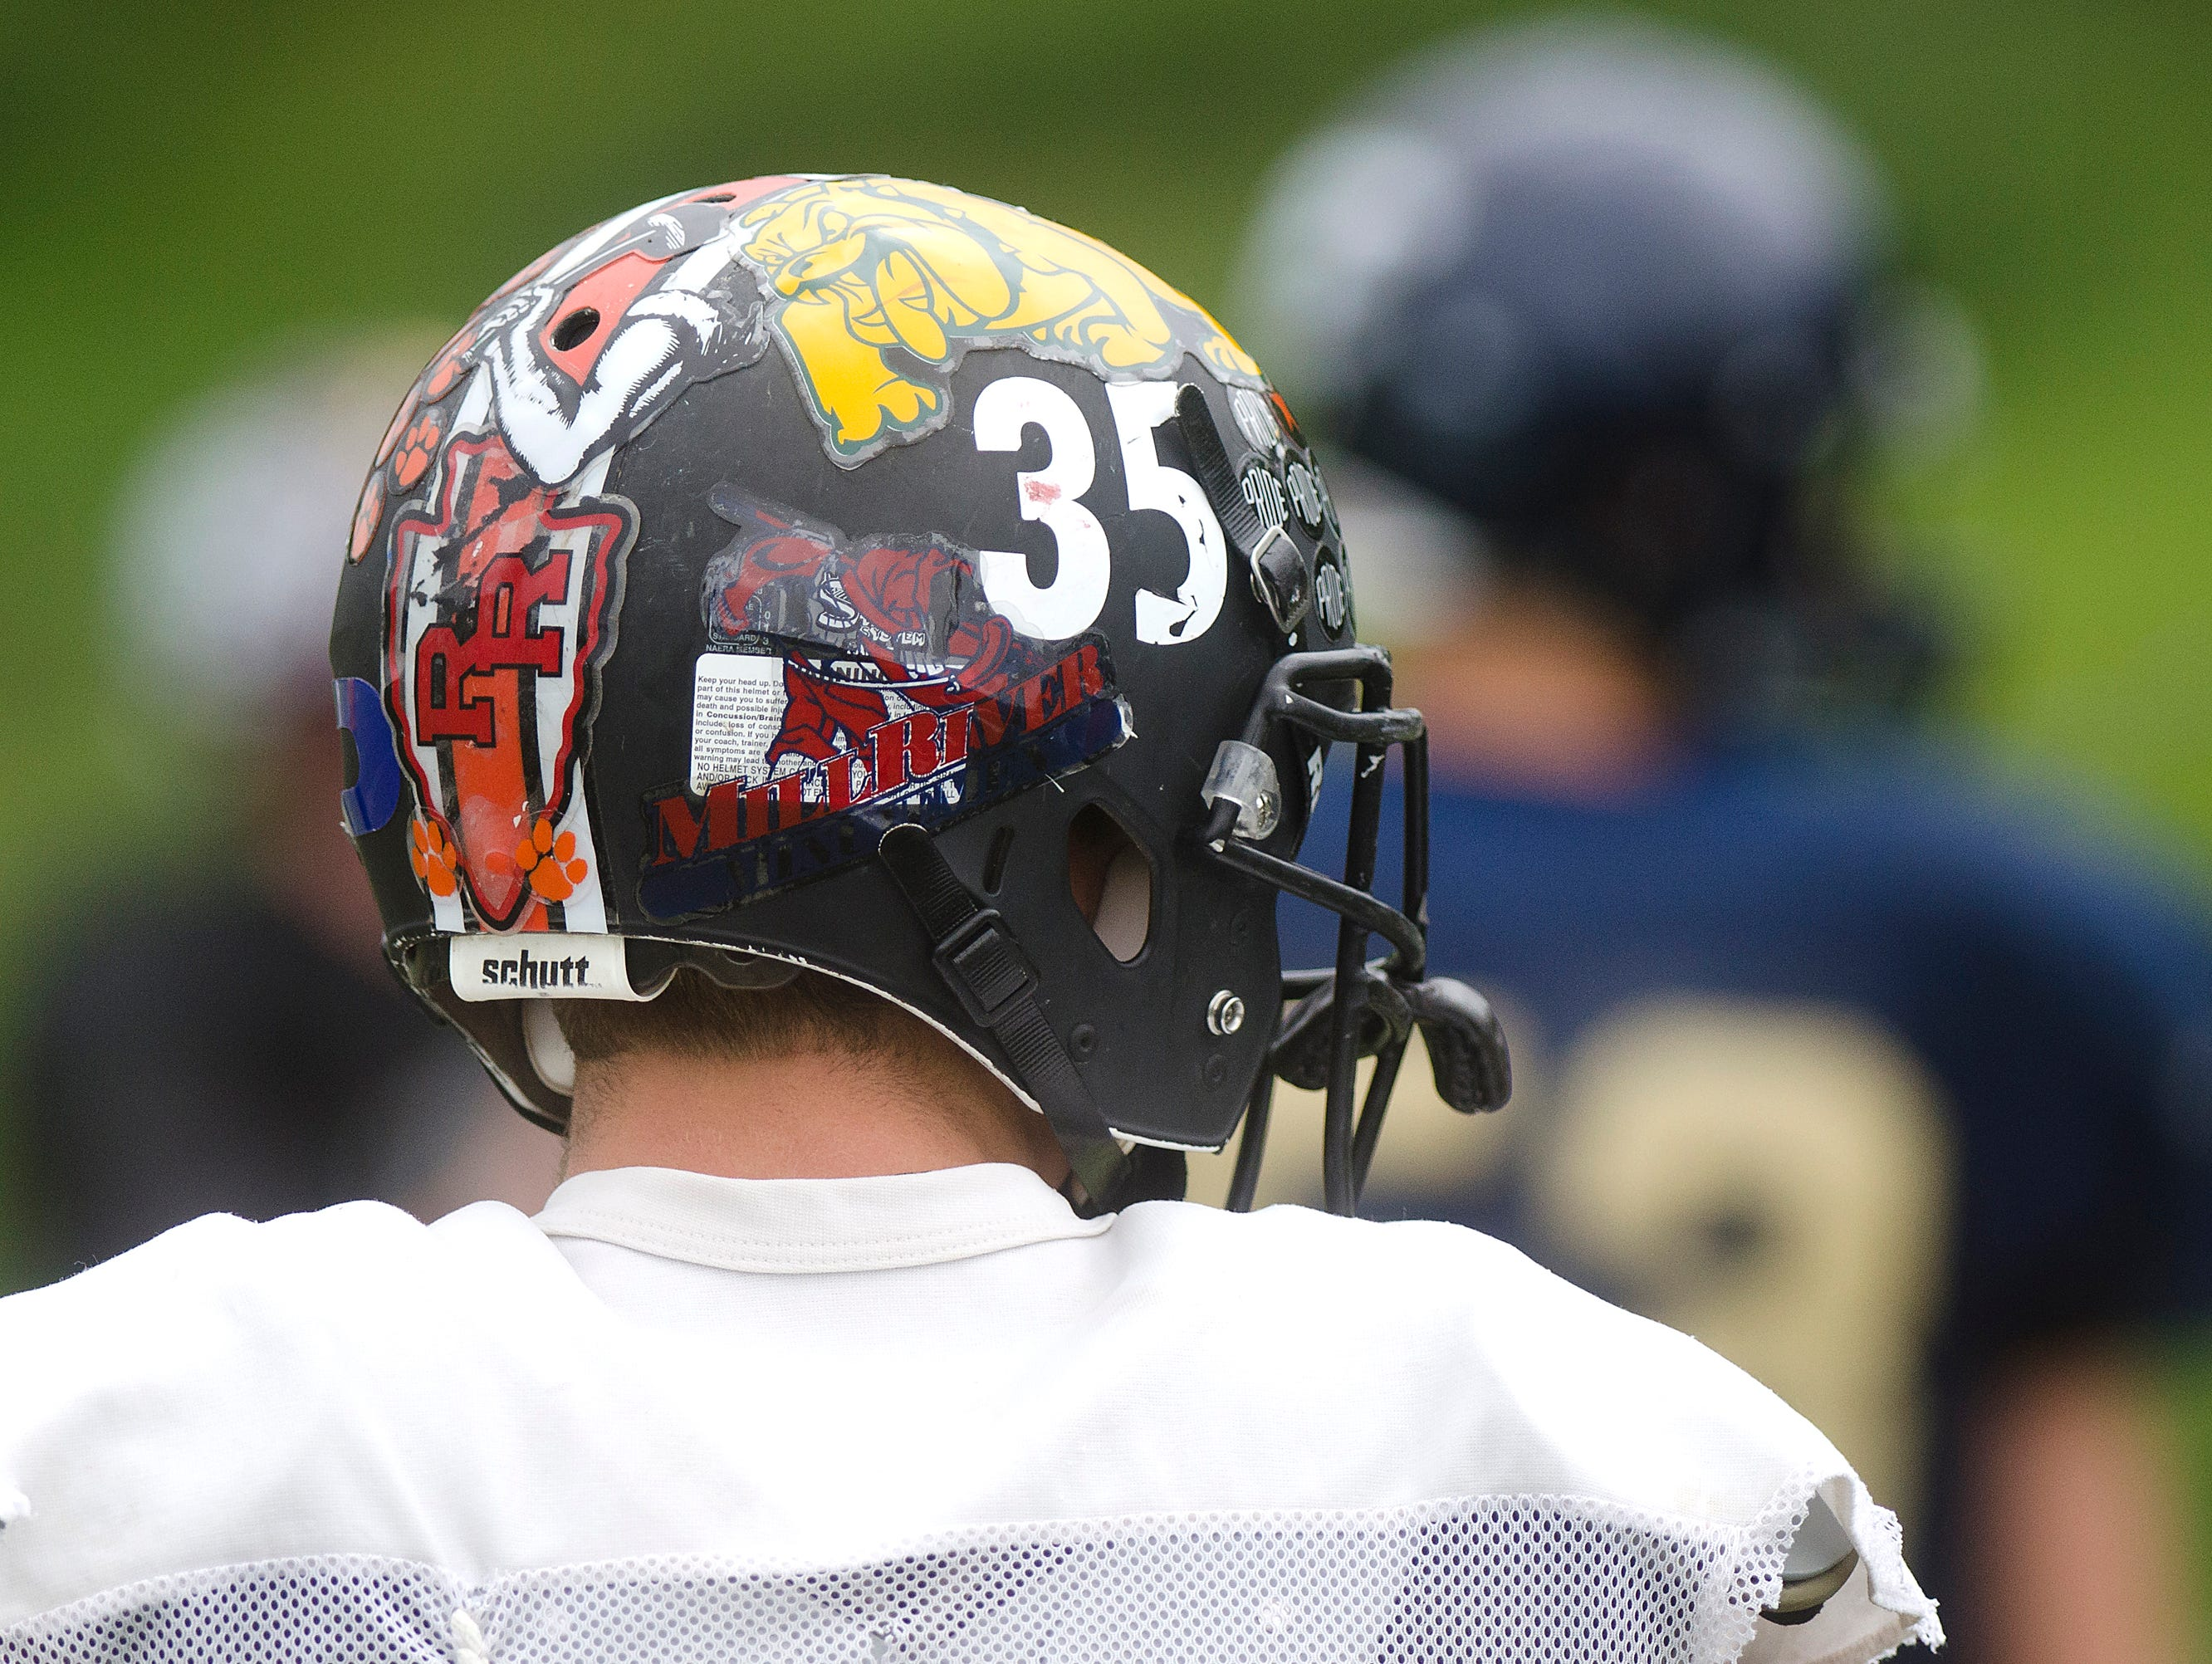 A variety of team decals adorn the helmet of Middlebury running back Jakob Trautwein during practice for the 61st Shrine Maple Sugar Bowl at Castleton State College on Monday.